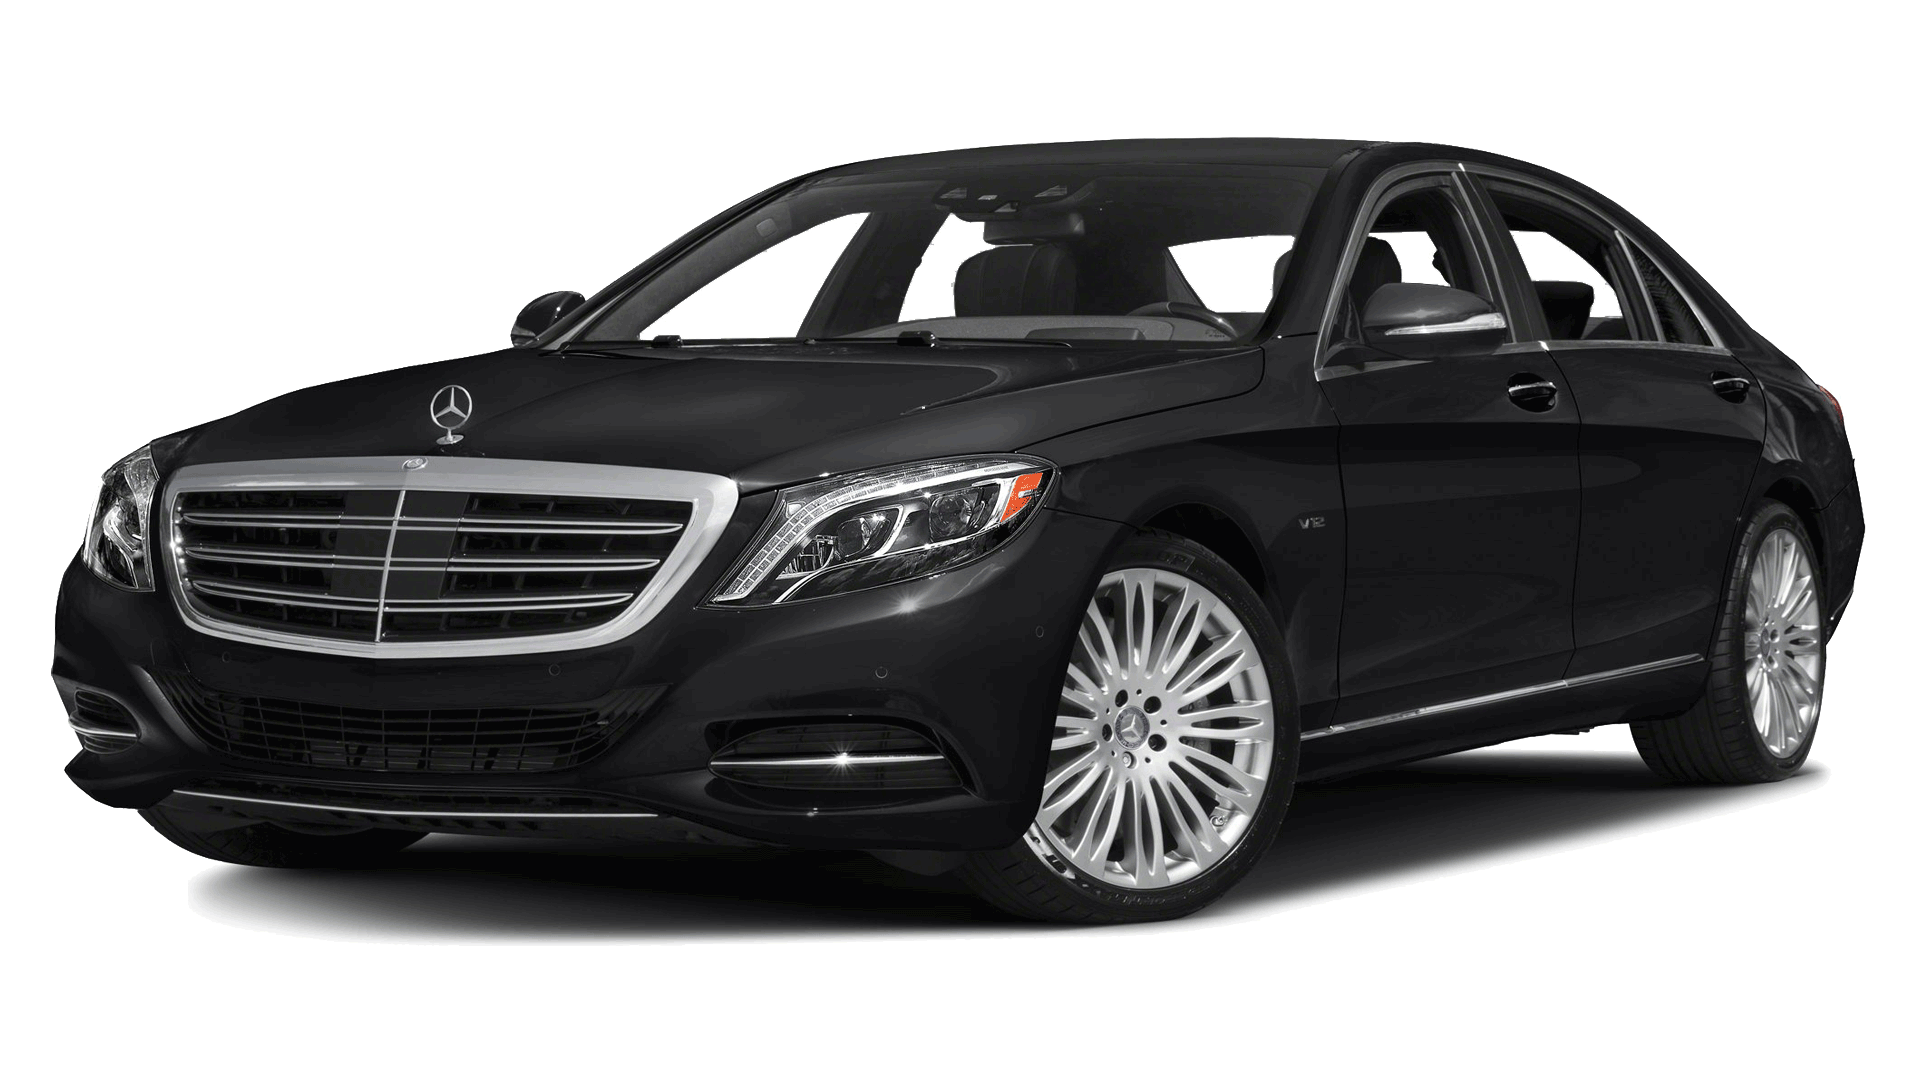 Mercedes benz s 550 rudy limousines for Mercedes benz 550s